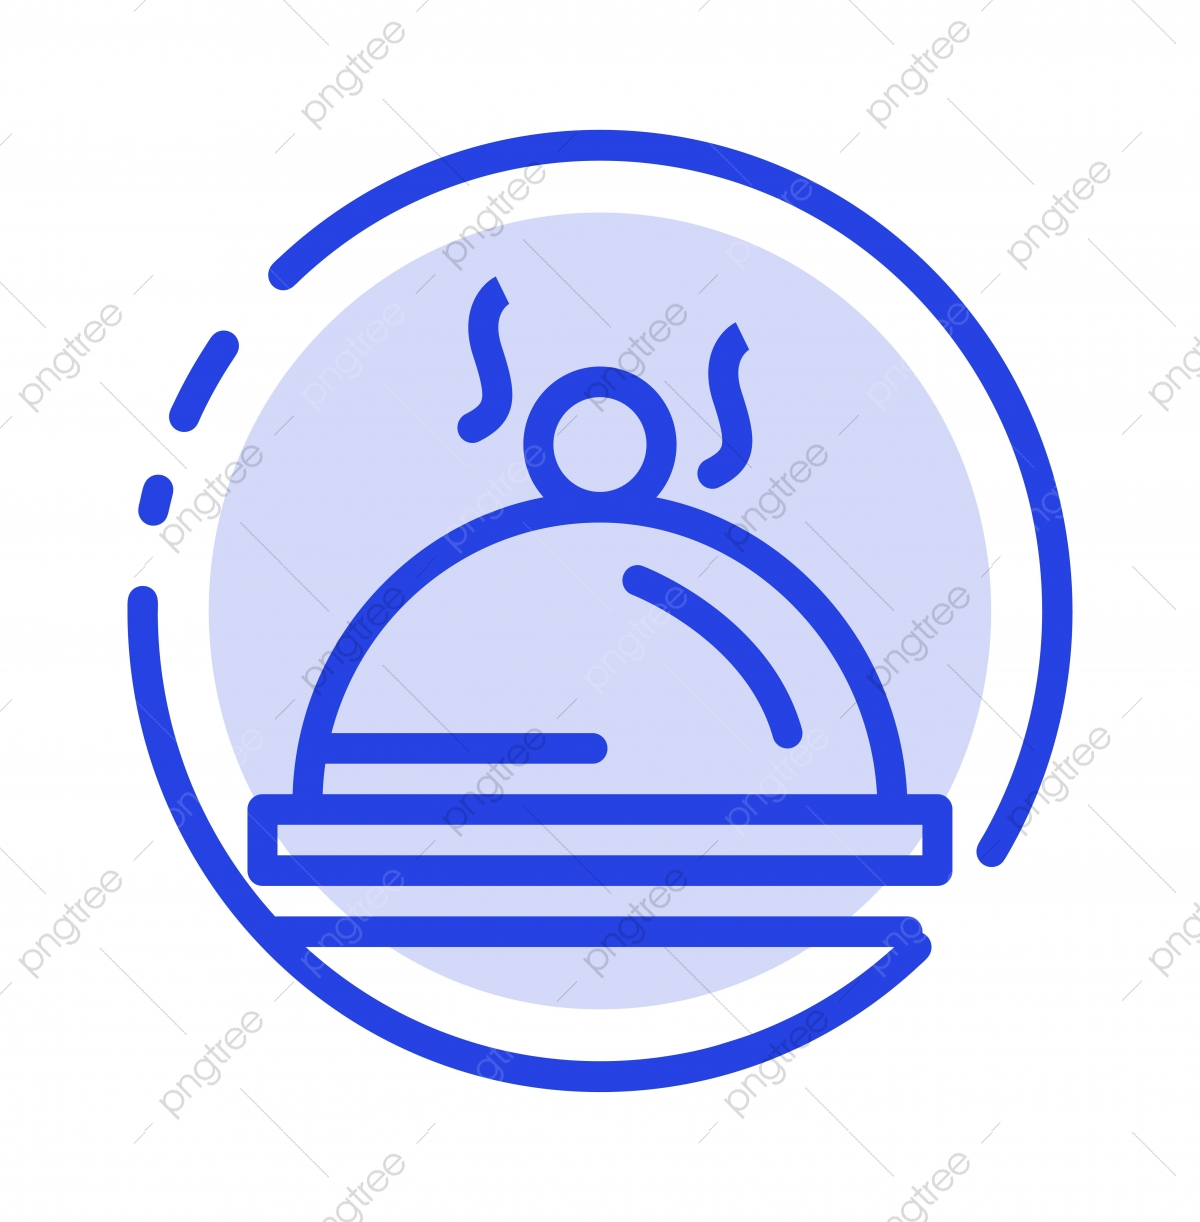 Hotel Dish Food Service Blue Dotted Line Line Icon Food Icons Hotel Icons Service Icons Png And Vector With Transparent Background For Free Download